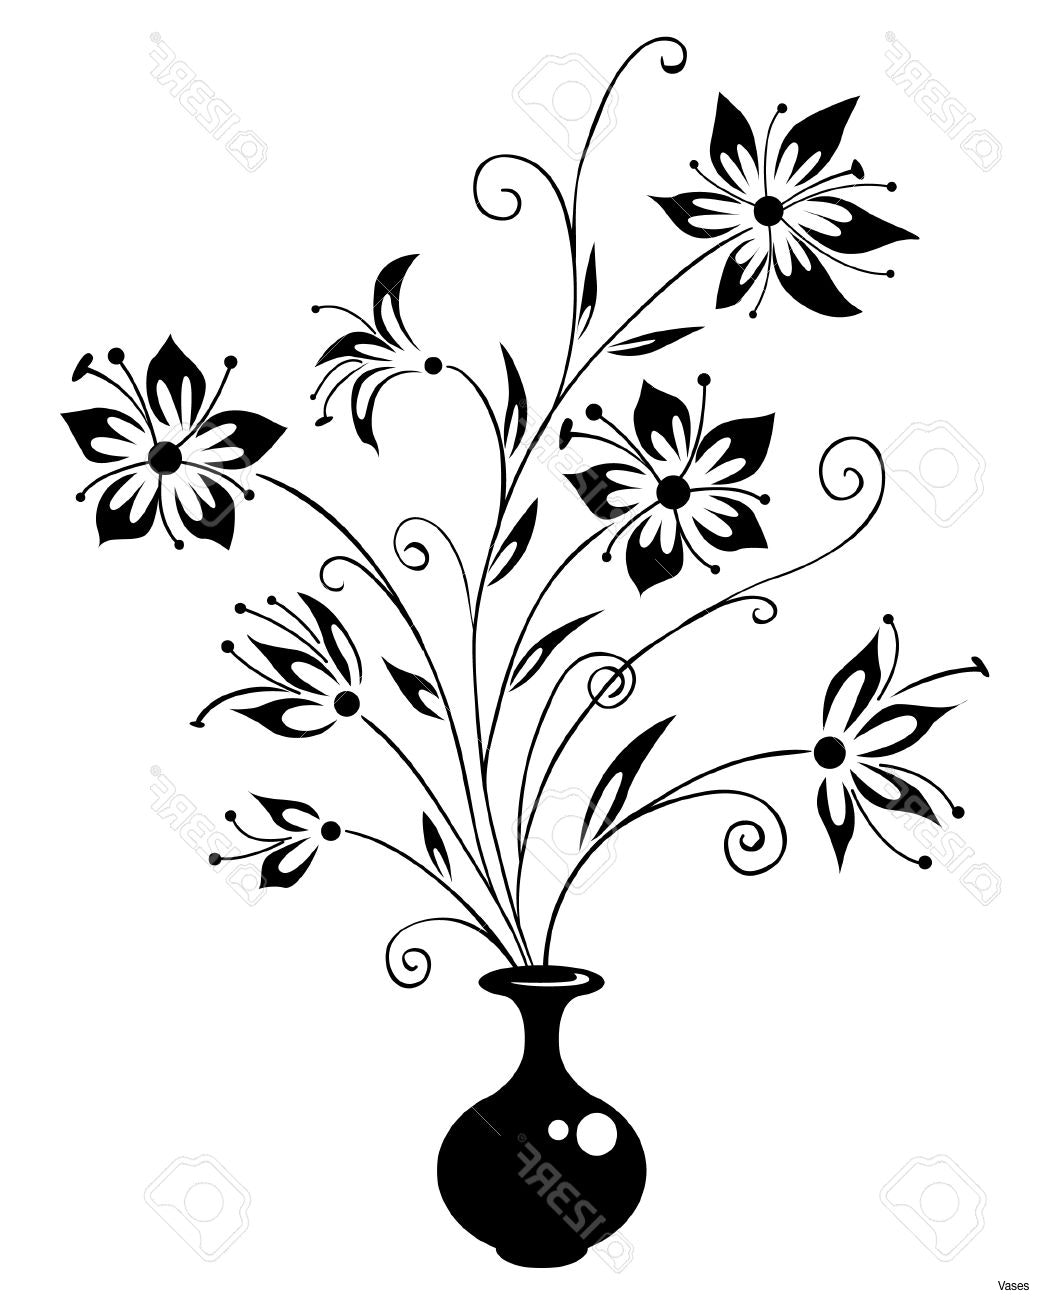 Flowers In Black And White Drawing At Getdrawings Free For